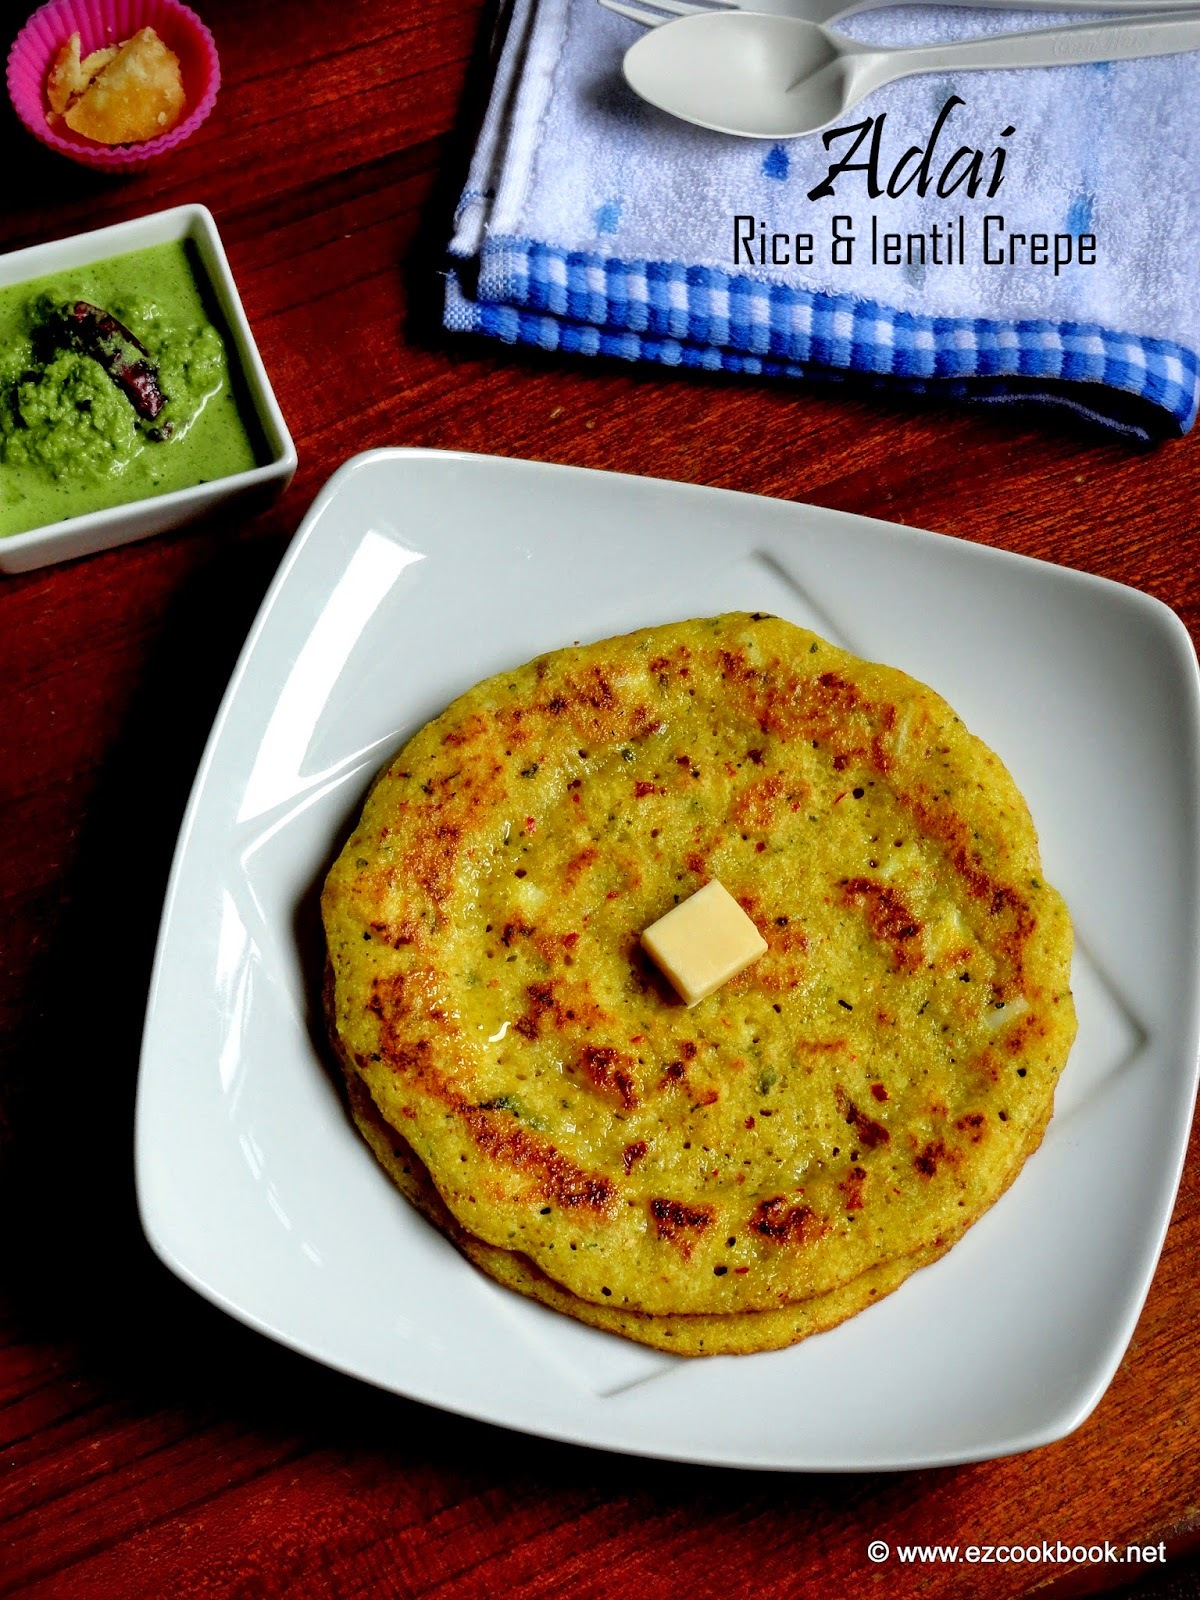 Adai | Rice & Lentil Crepes - Healthy Breakfast Recipe